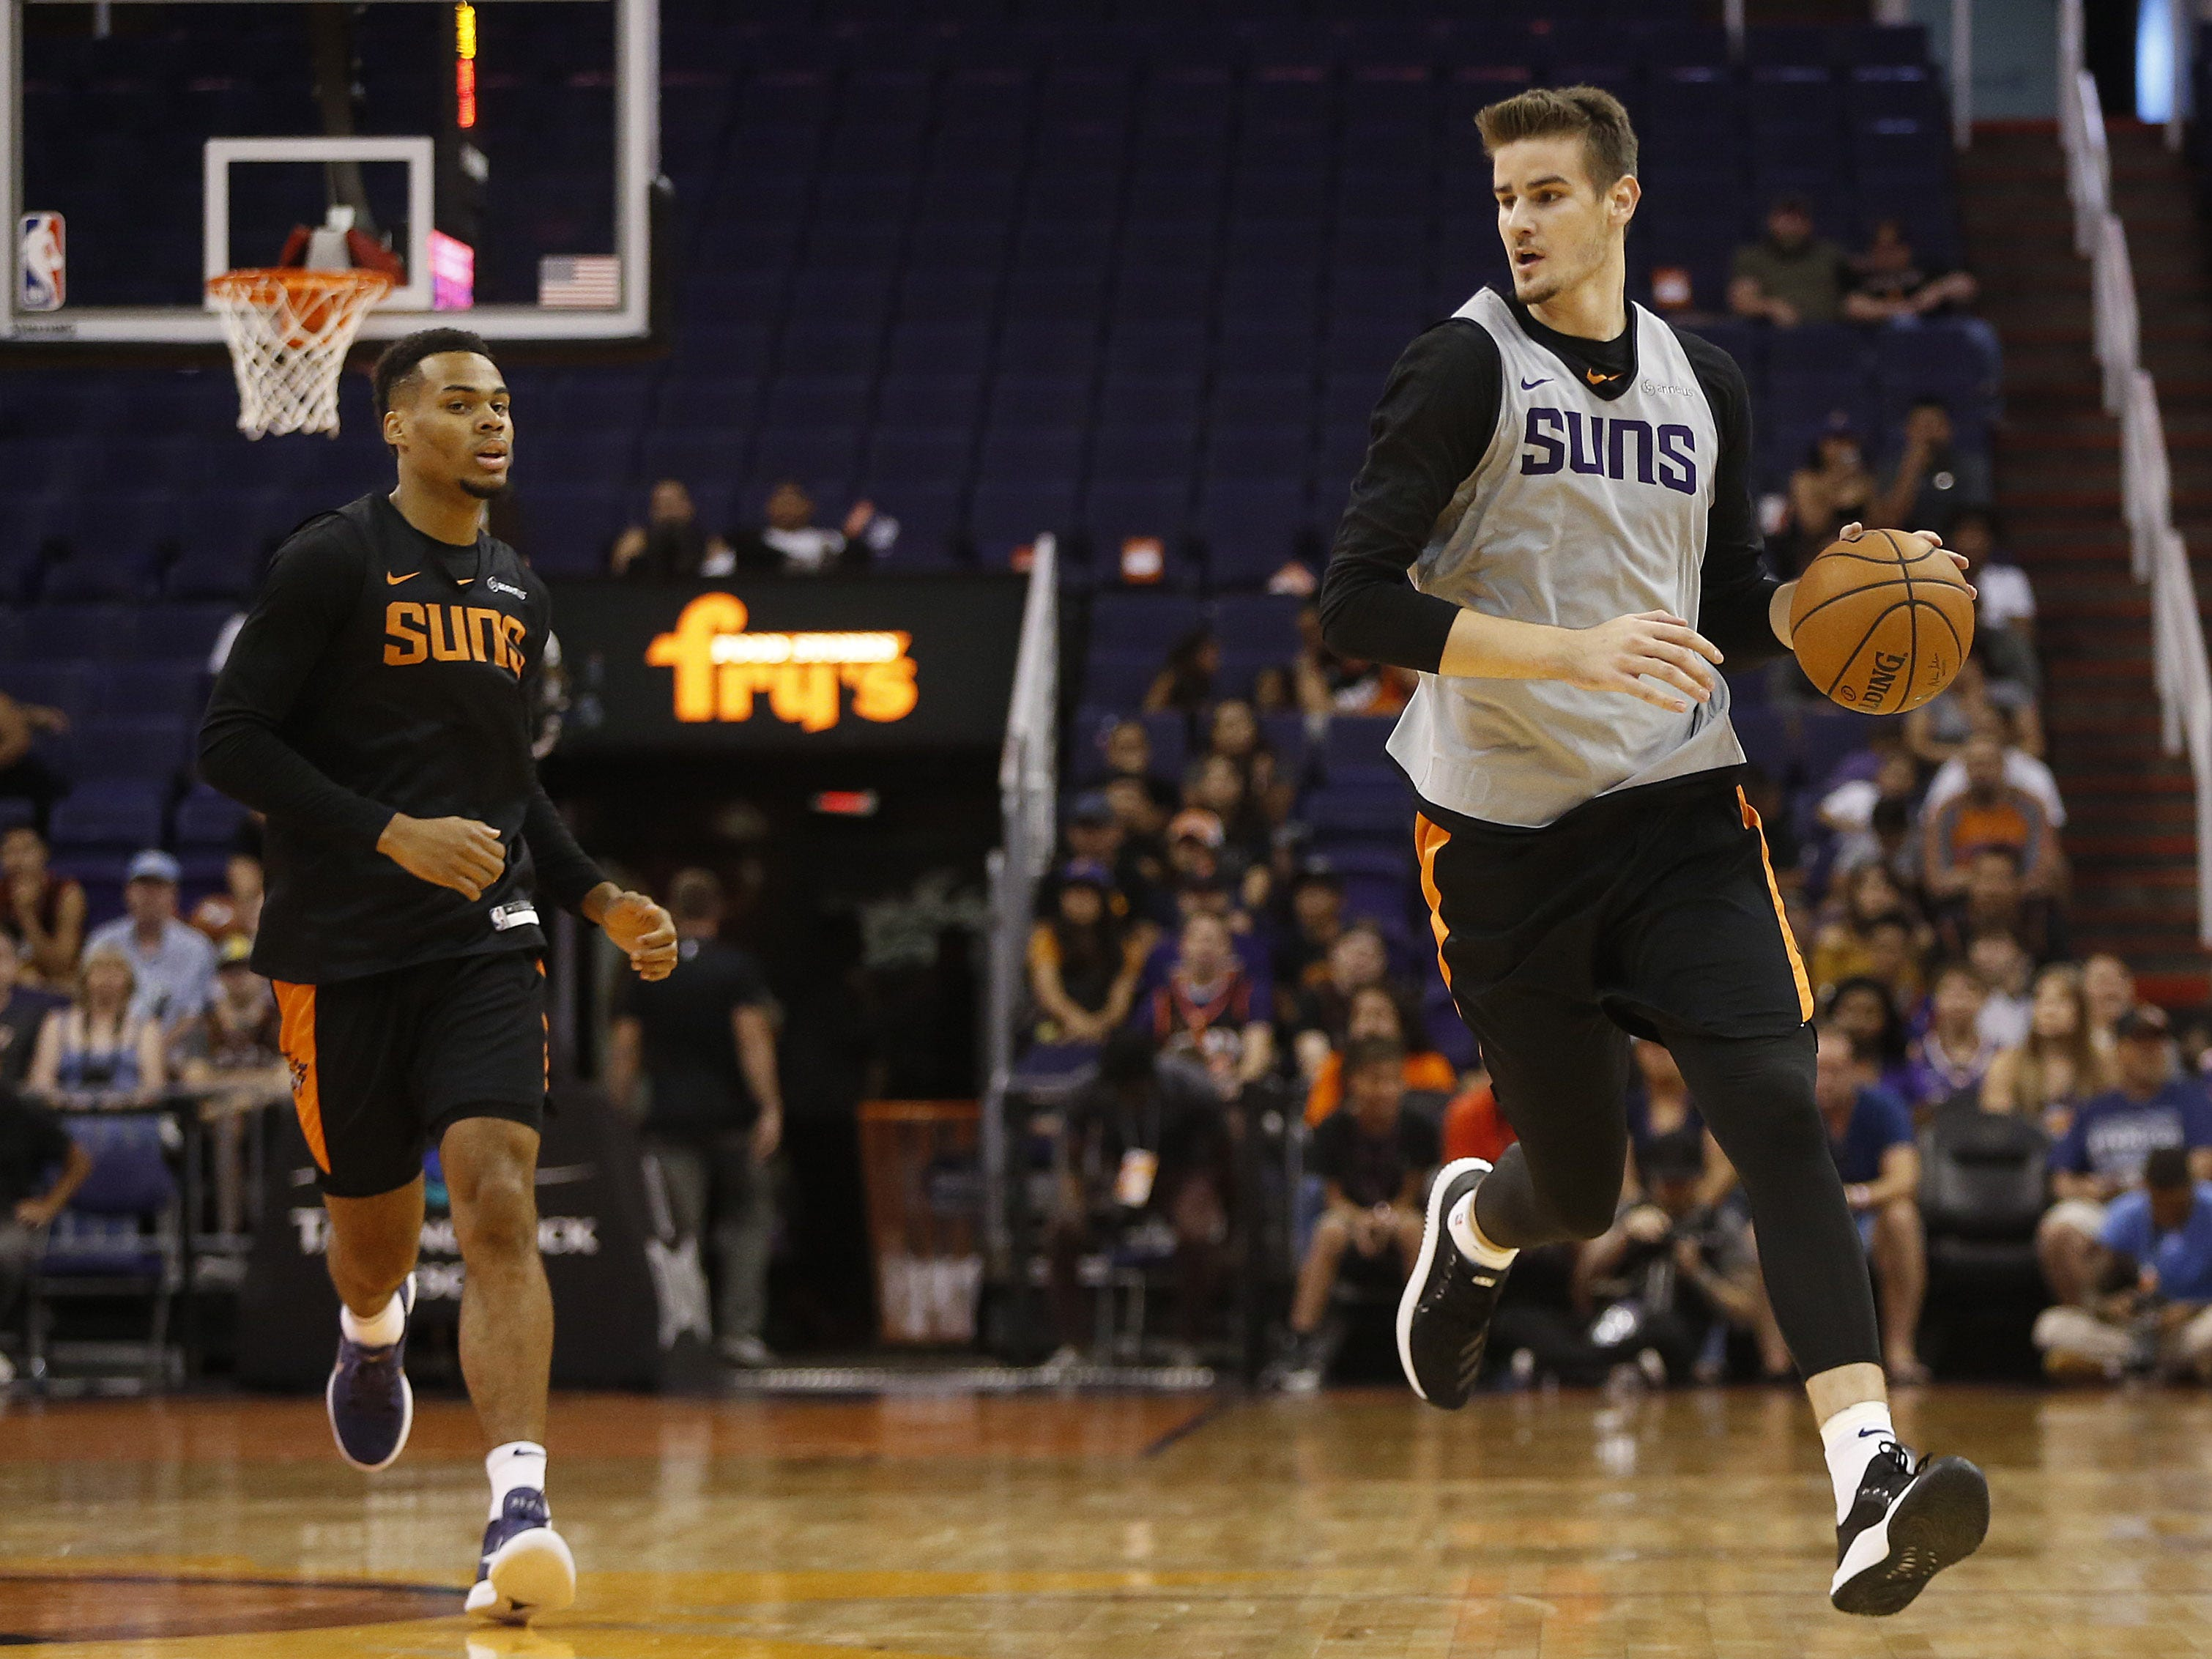 Suns Dragan Bender dribbles up court during an Open Practice at Talking Stick Resort Arena in Phoenix, Ariz. on Sept. 29, 2018.